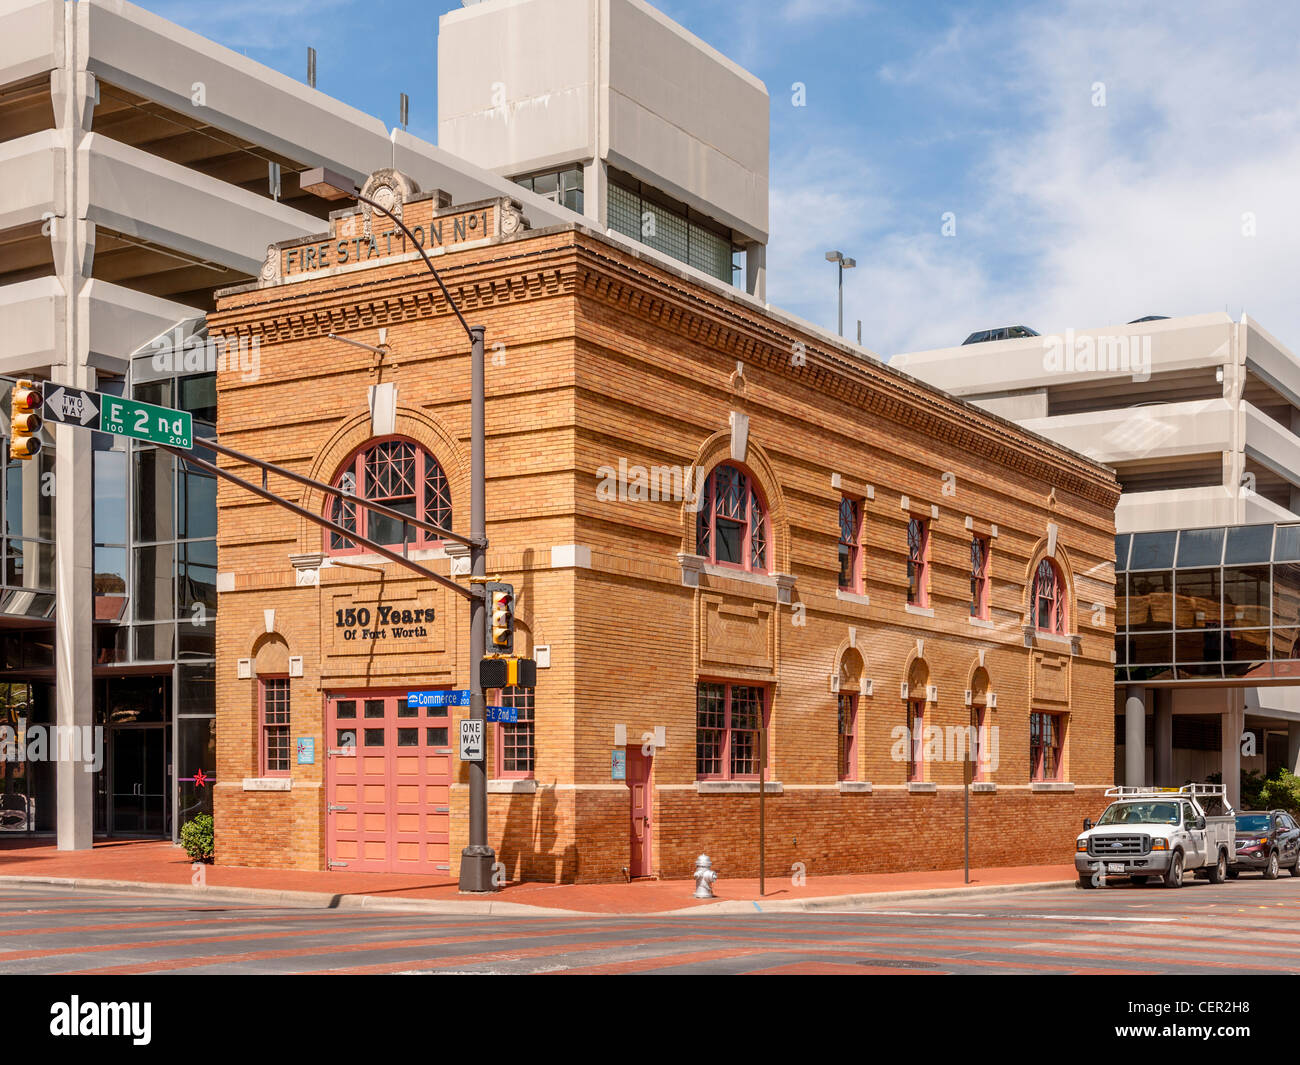 Fire Station No. 1, Fort Worth - Stock Image